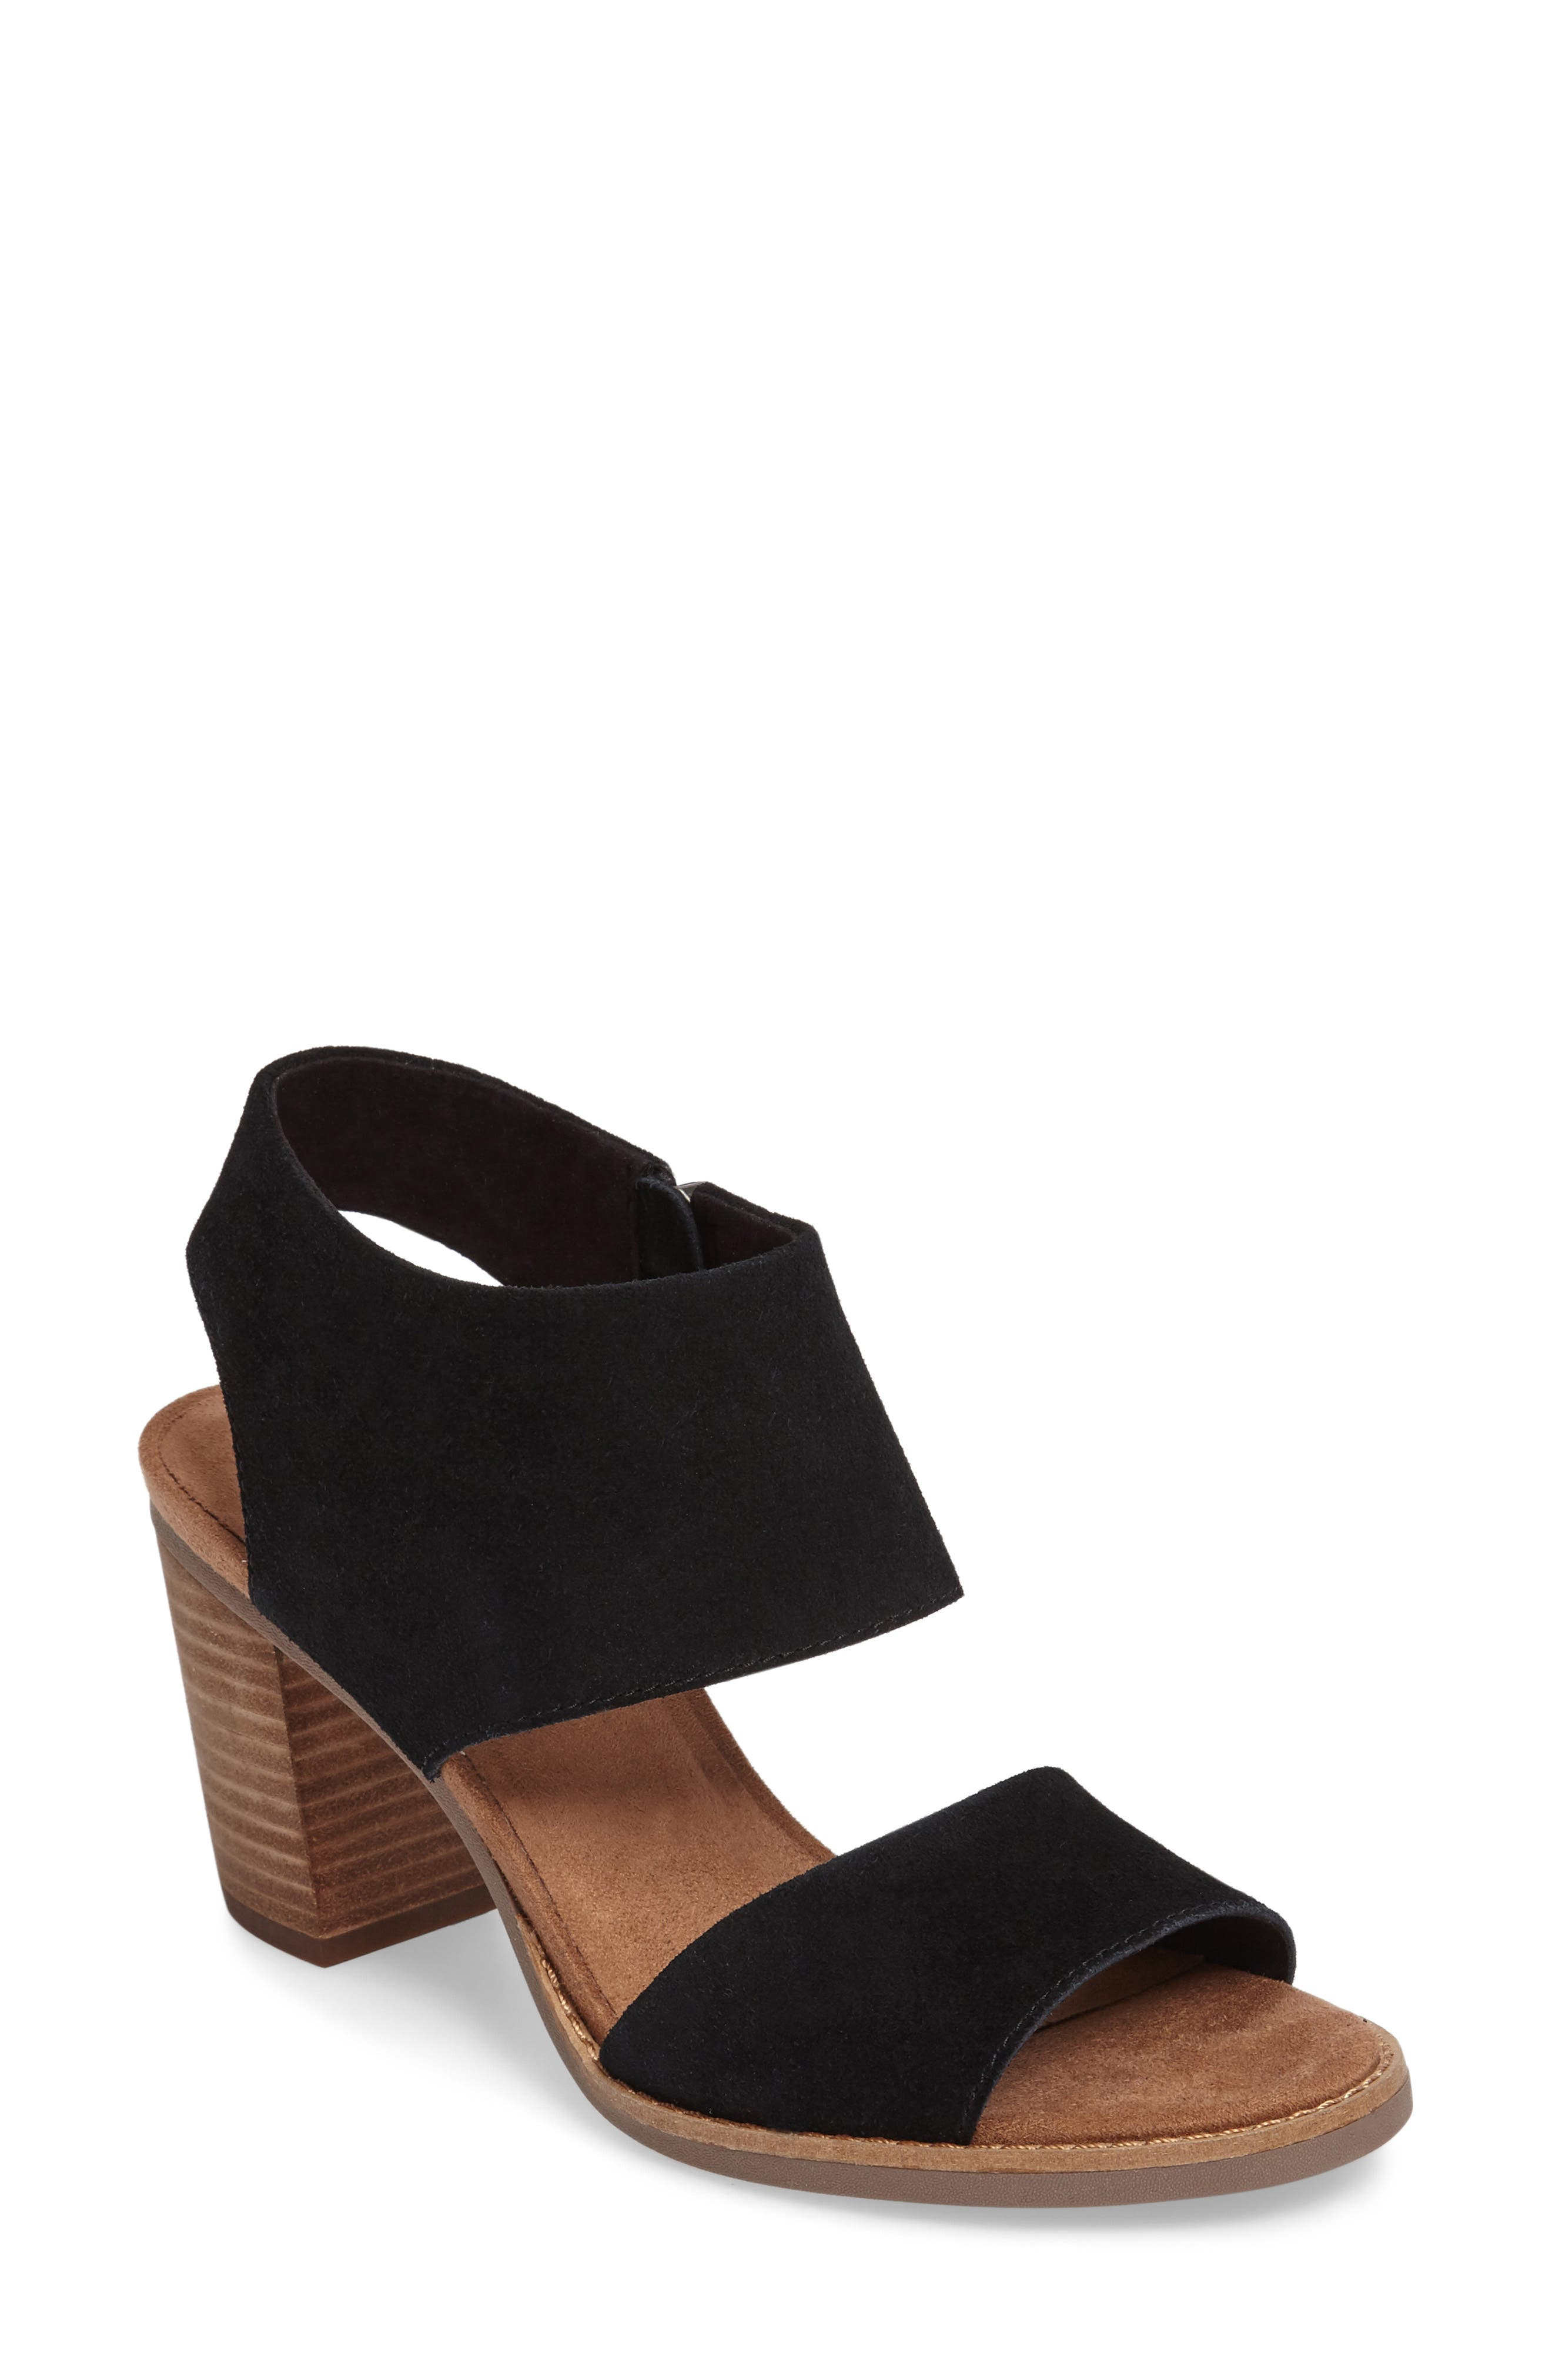 Majorca Sandal,                         Main,                         color, BLACK